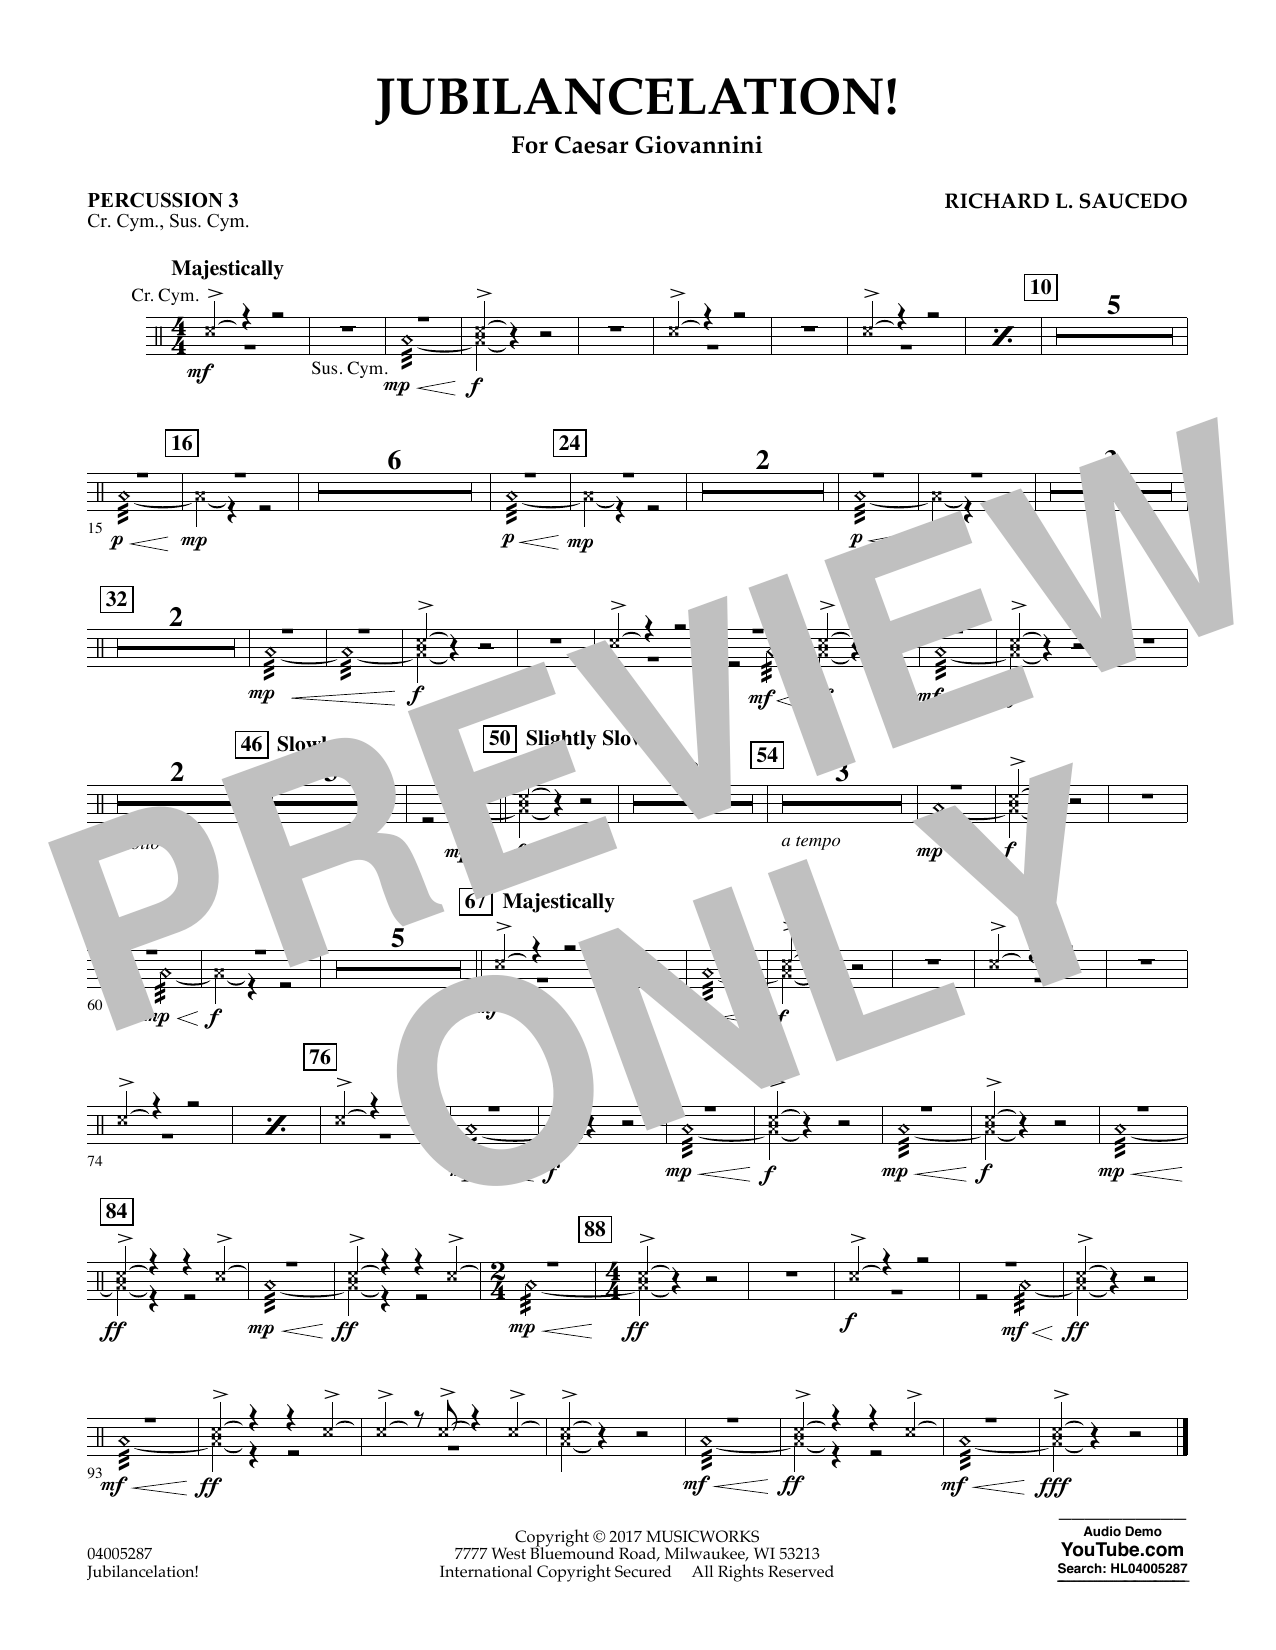 Jubilancelation! - Percussion 3